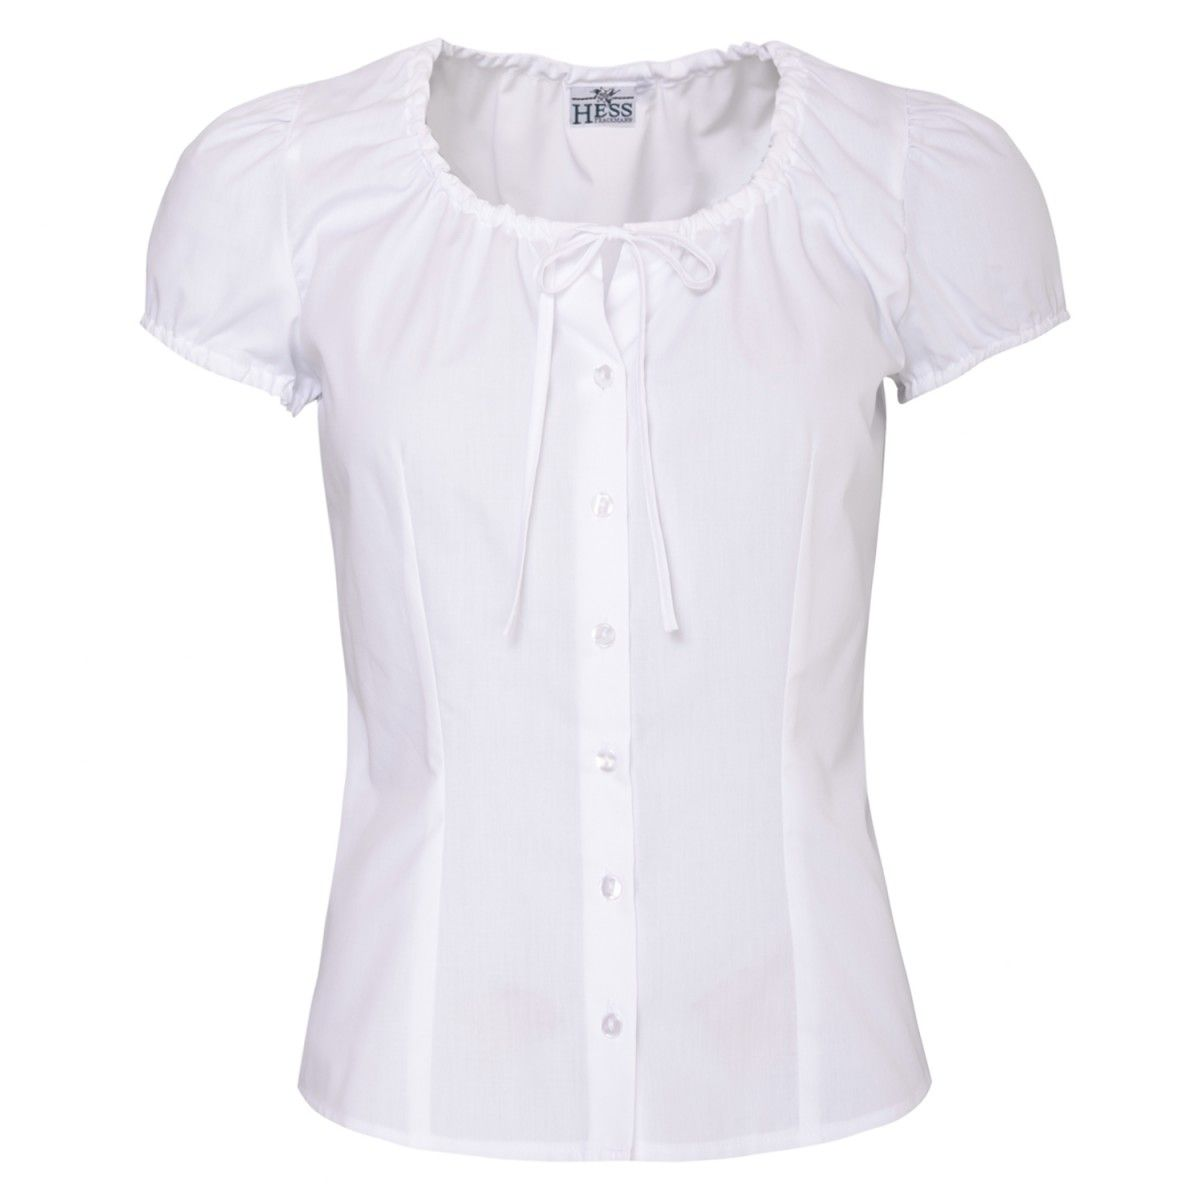 Dirndl Blouse Elisabeth in White from Hess